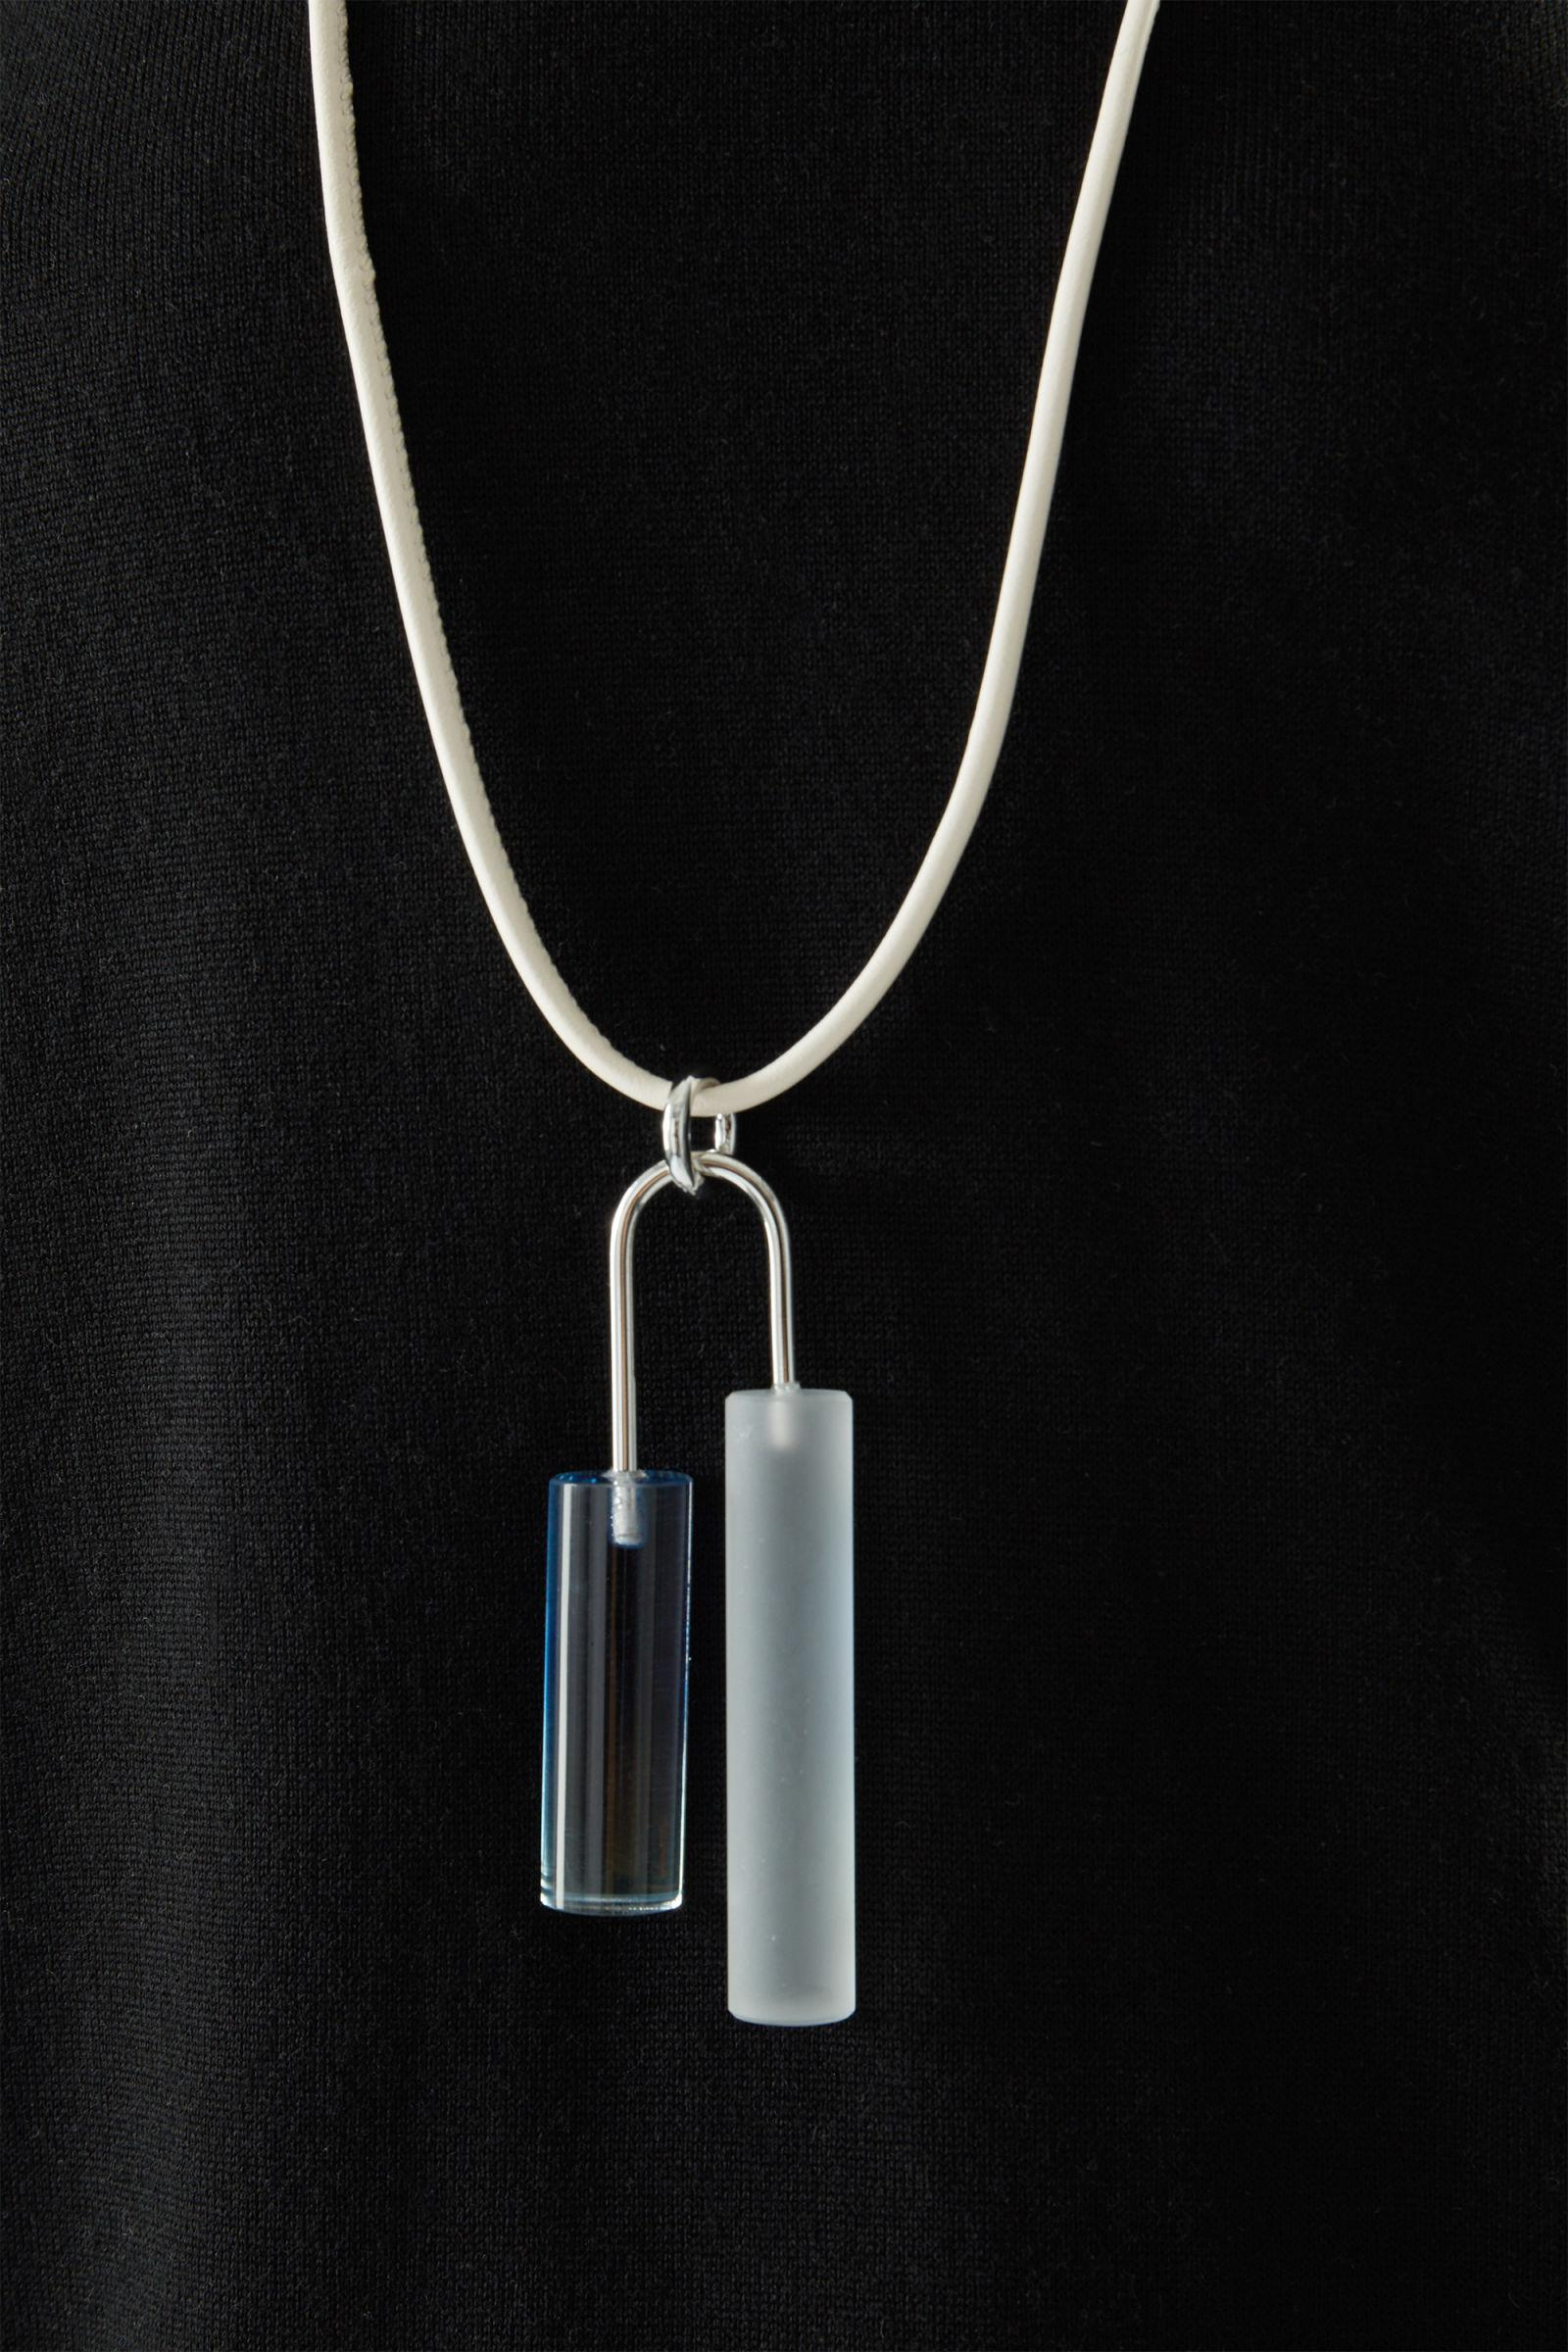 RECYCLED GLASS TWO-TONE PENDANT NECKLACE